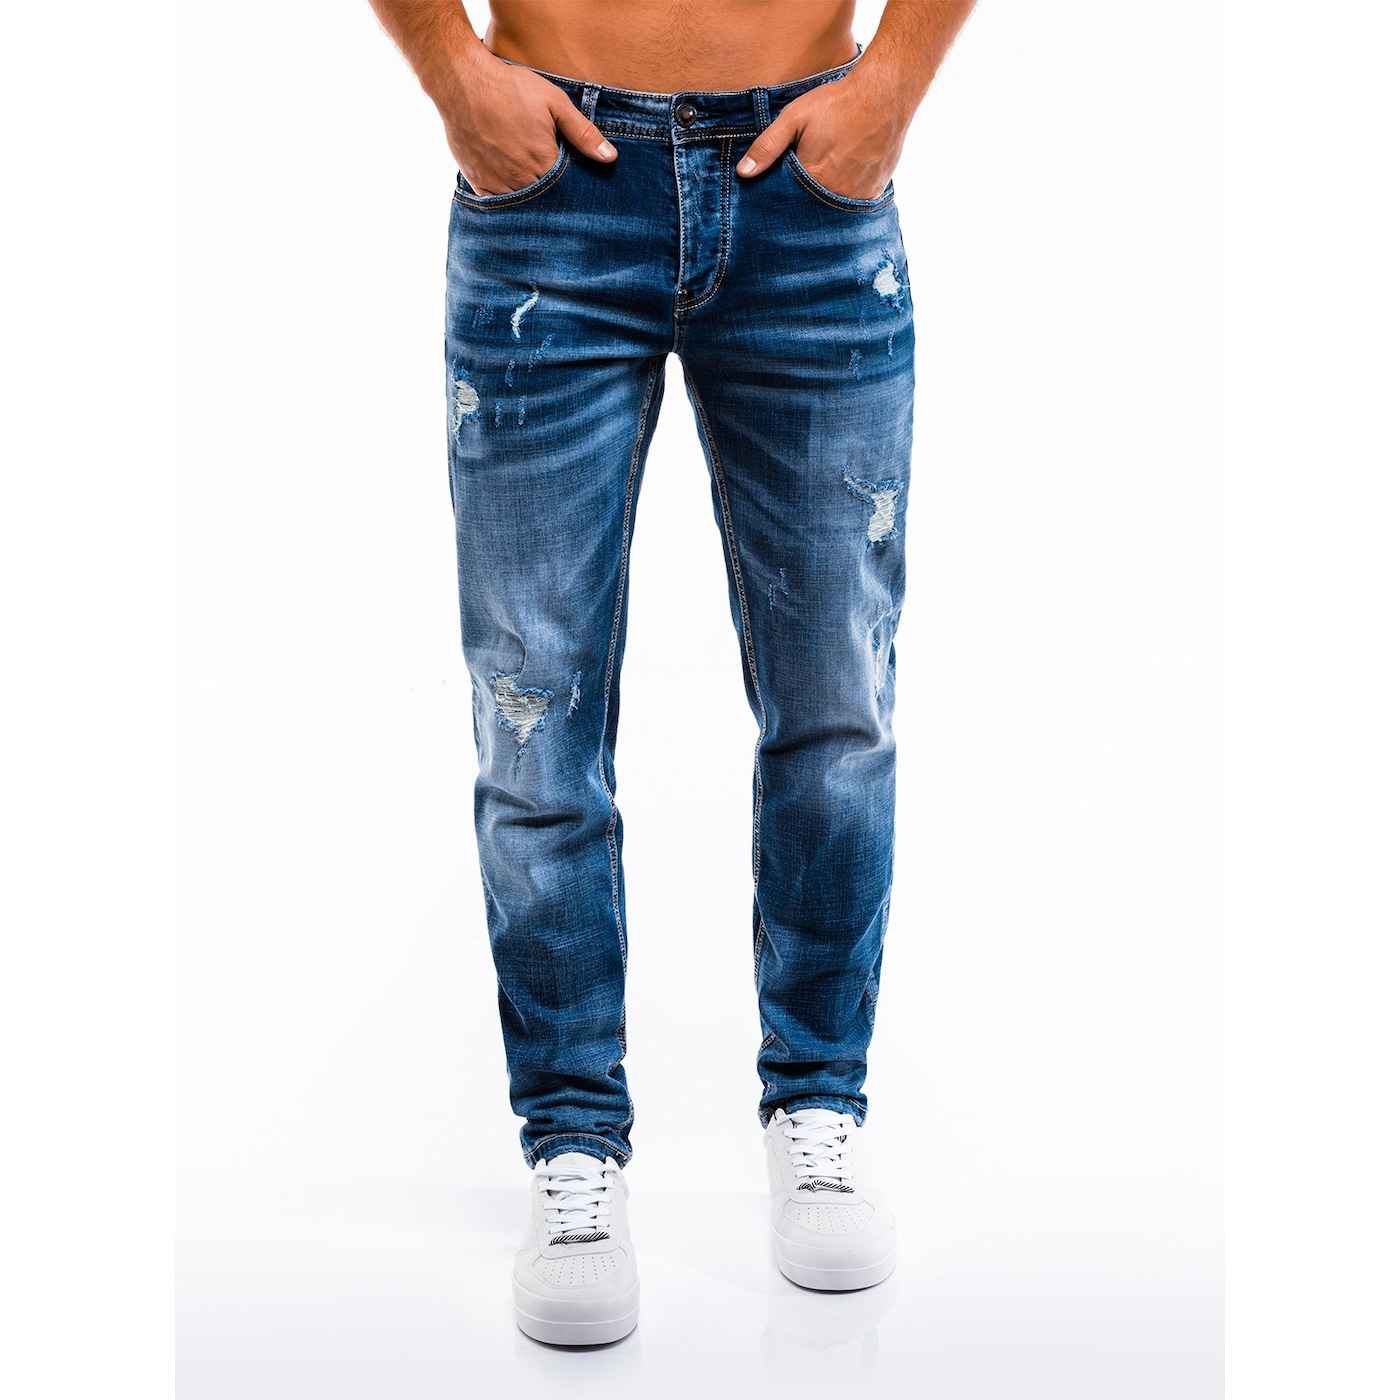 Ombre Clothing Men's jeans P856